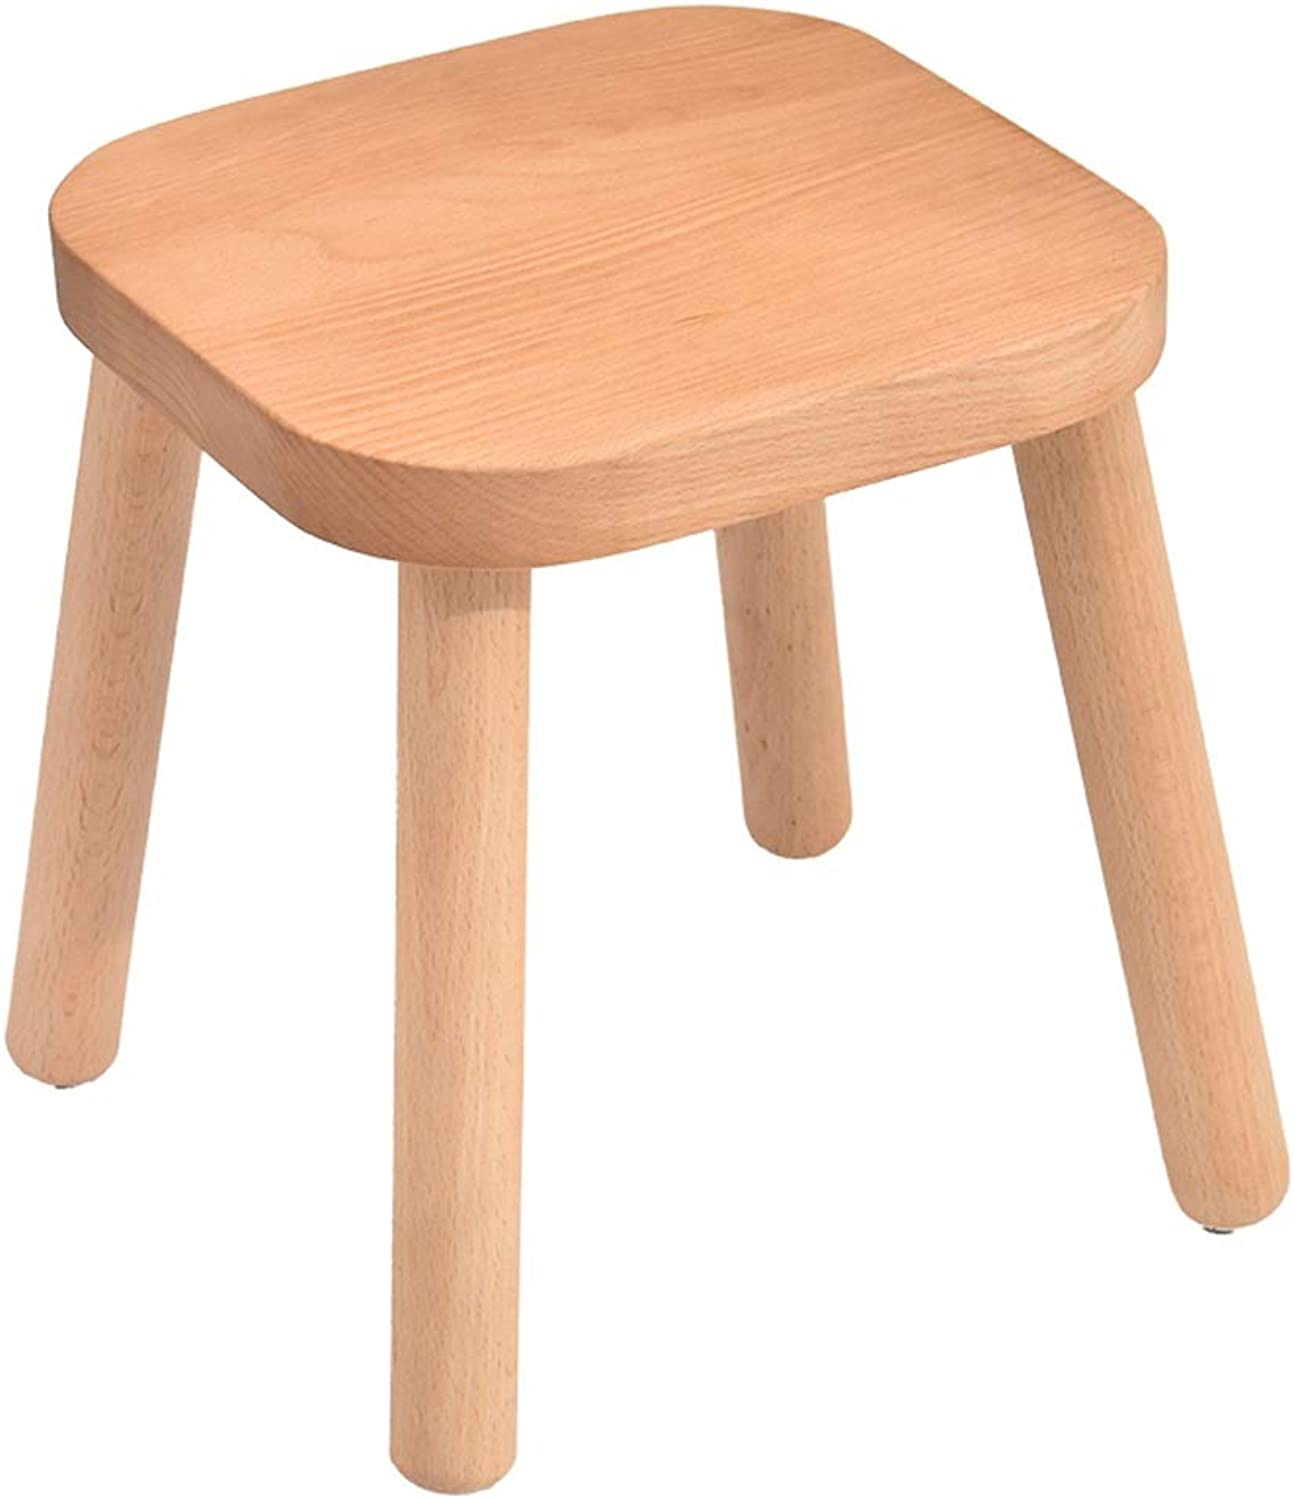 ZHANGQIANG Wooden Footstool, Natural Wooden Footrest, Flower Stand Walnut (color   Wood color, Size   26  26  29 cm)